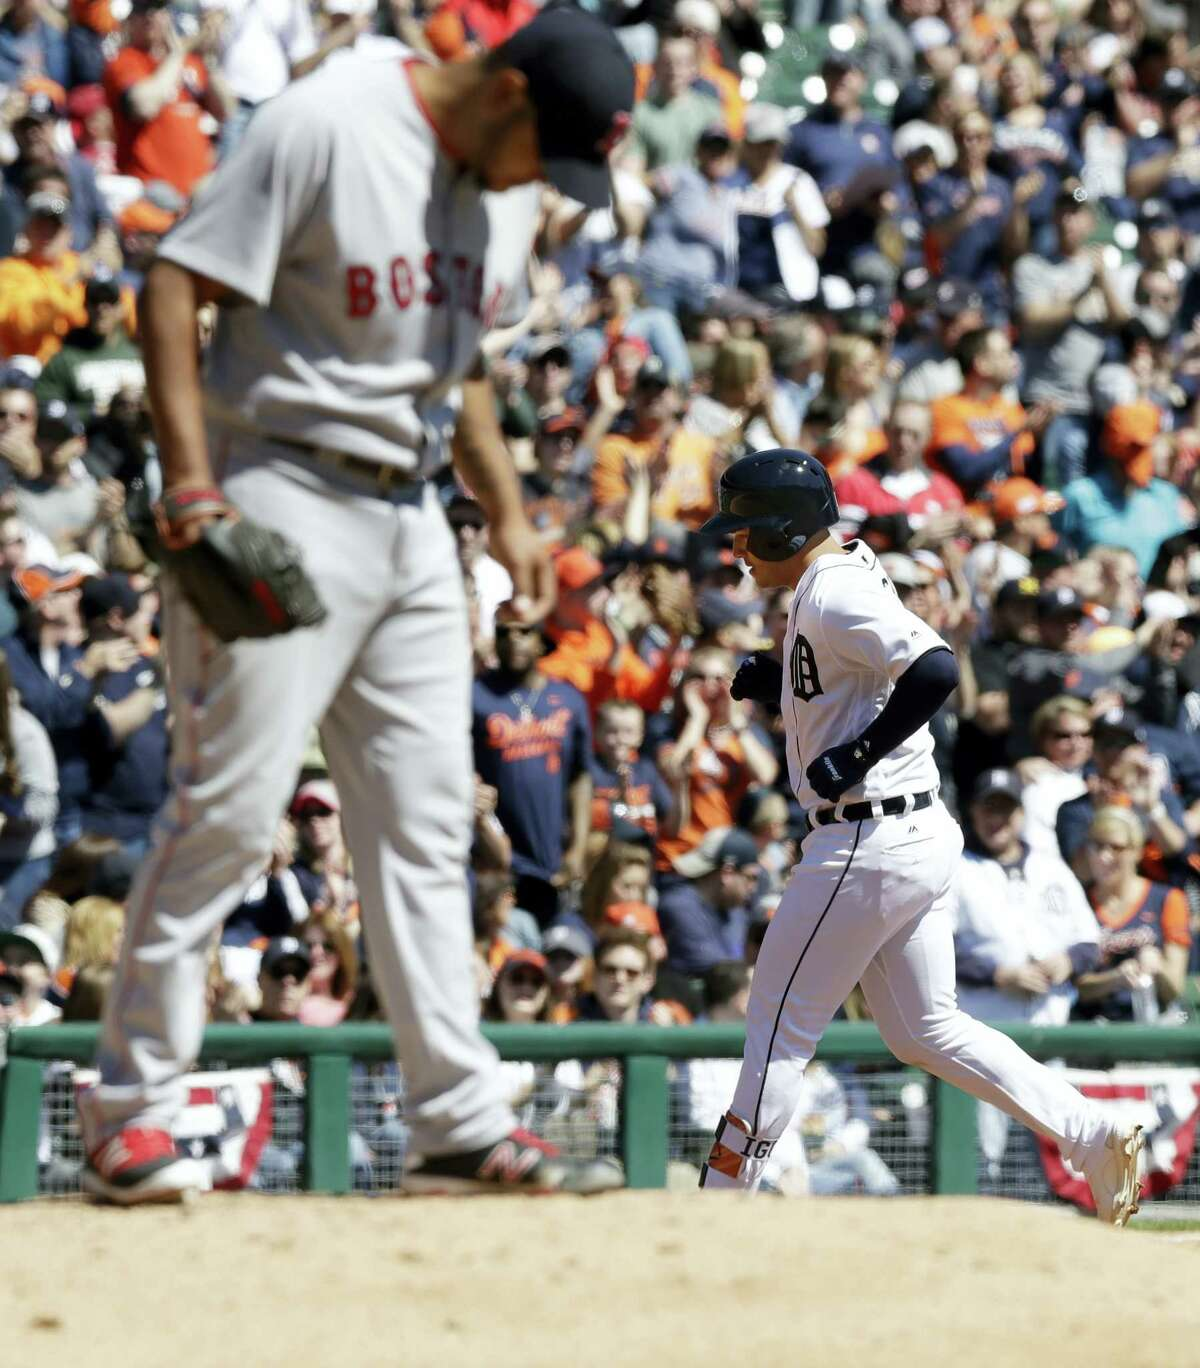 Red Sox starting pitcher Eduardo Rodriguez stands on the mound as the Tigers' Jose Iglesias rounds the bases during the third inning Saturday in Detroit.